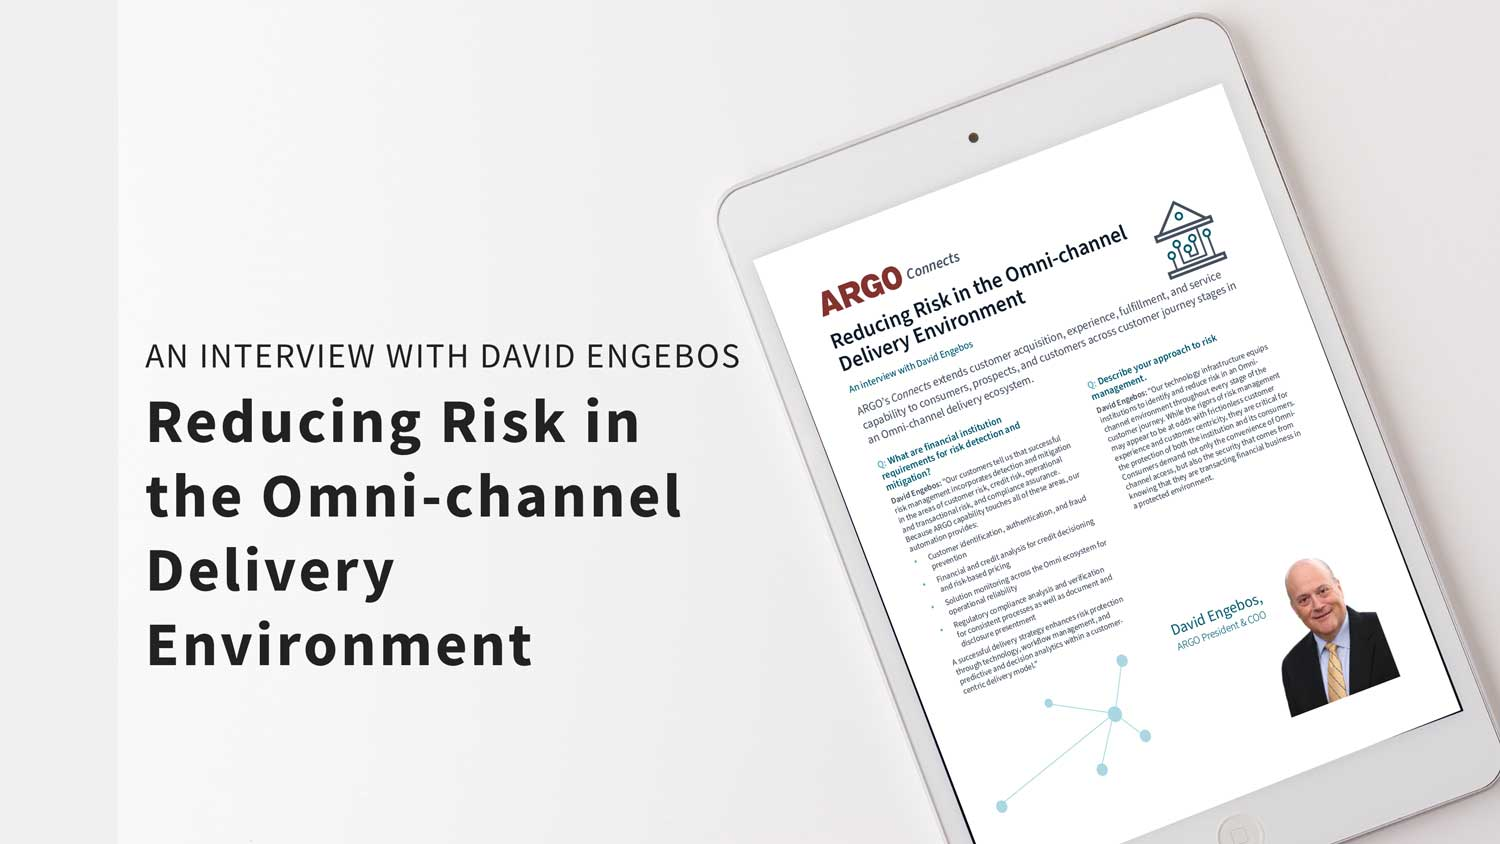 ARGO-interview-2020-reducing-risk-omni-channel-delivery-environment